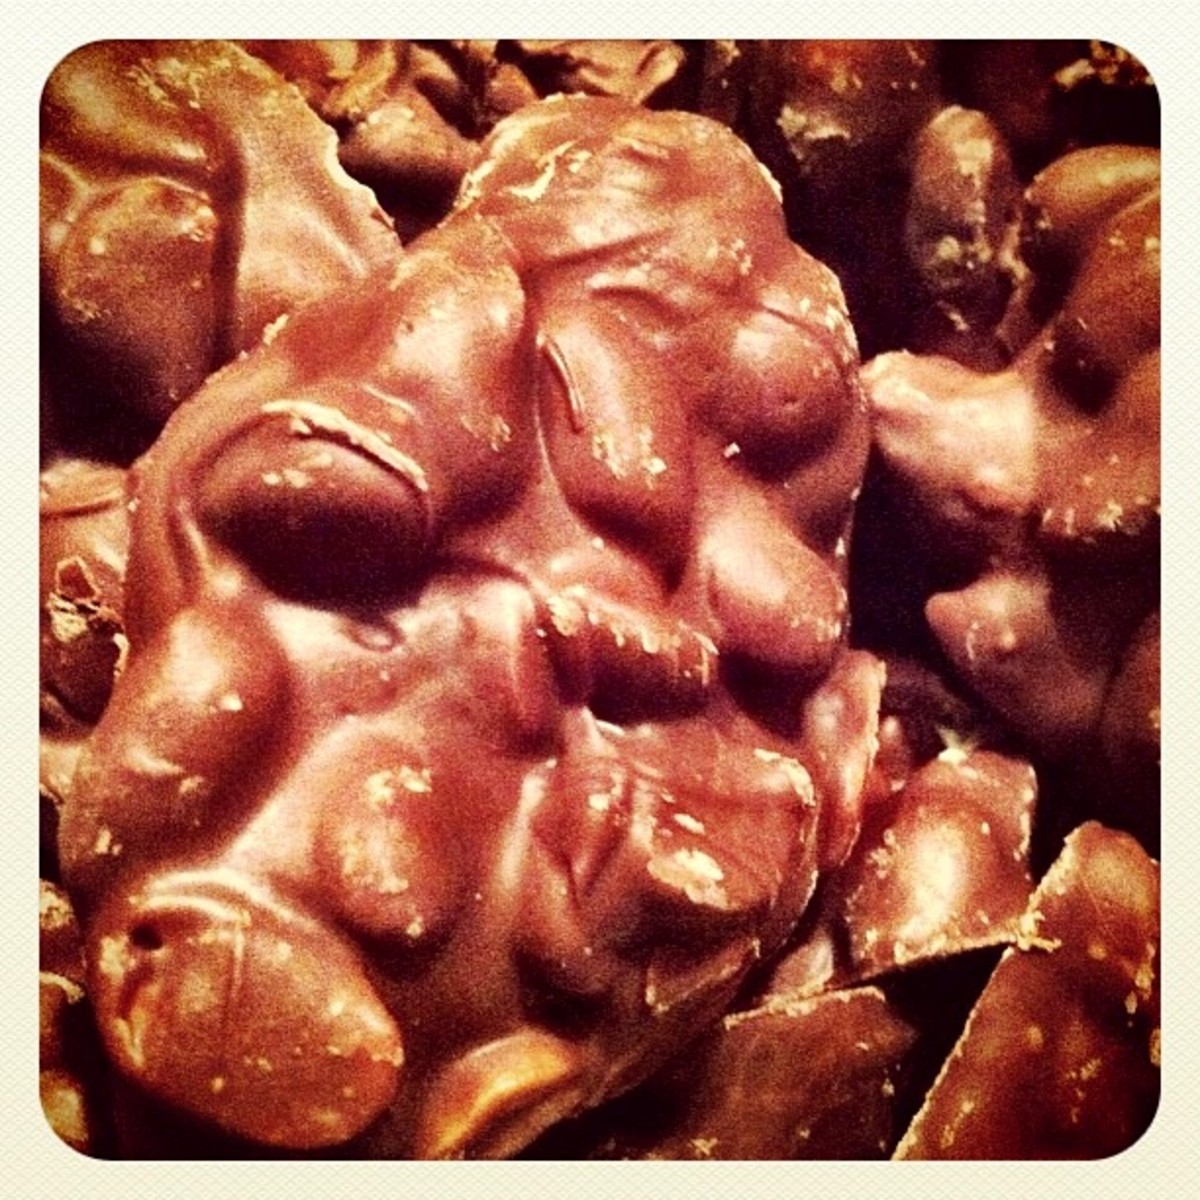 Chocolate covered peanut or raisin clusters.